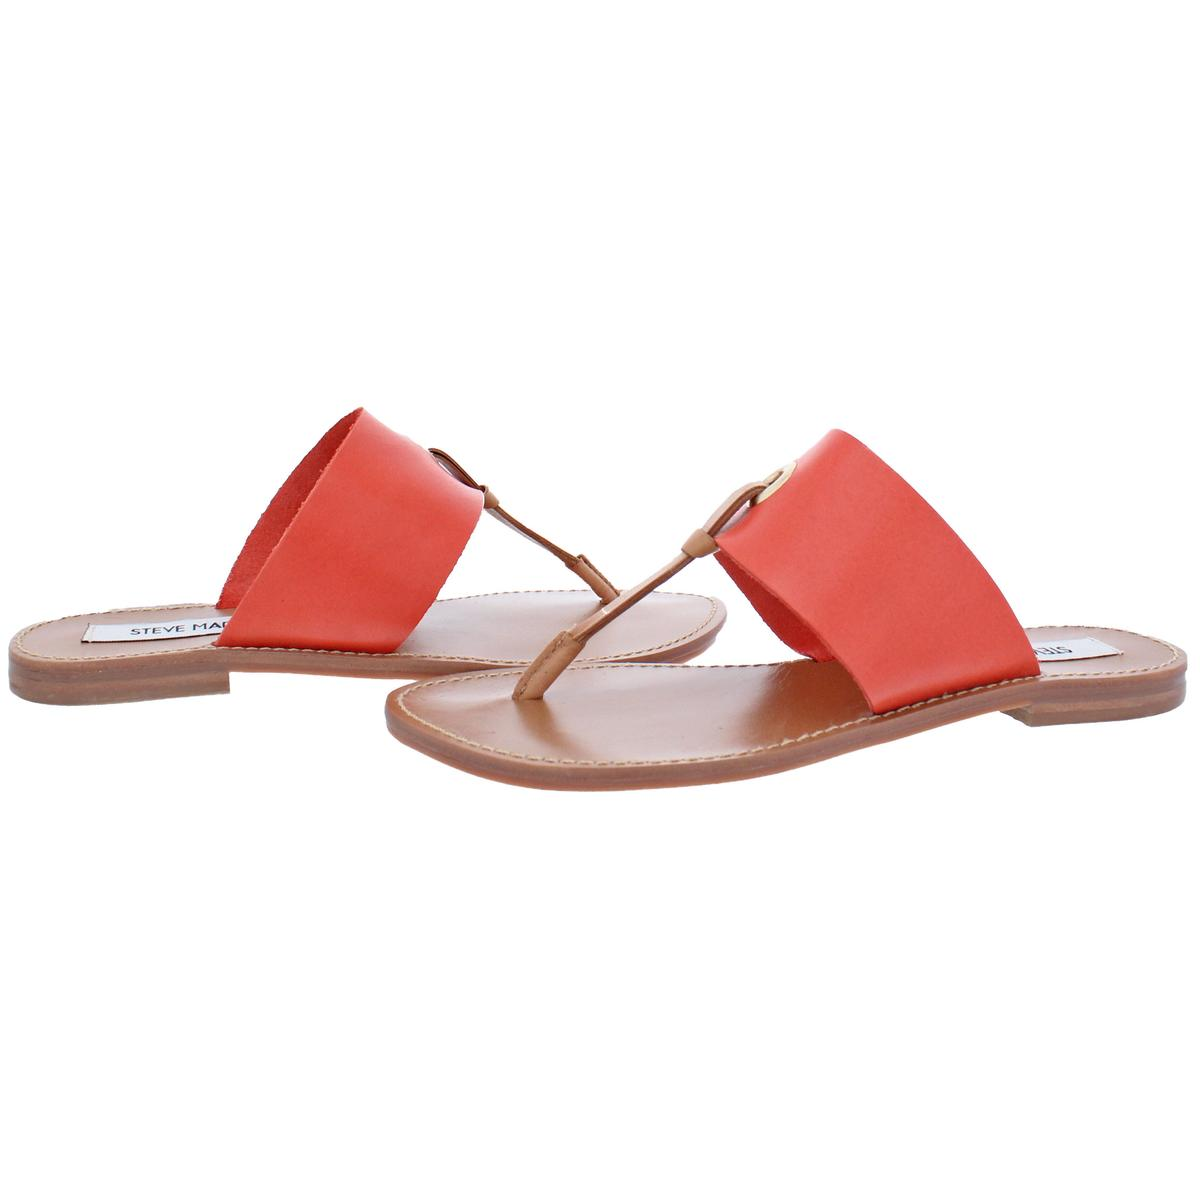 Steve-Madden-Women-039-s-Ringer-Leather-Casual-Thong-Slide-Flat-Sandals-Shoes thumbnail 3